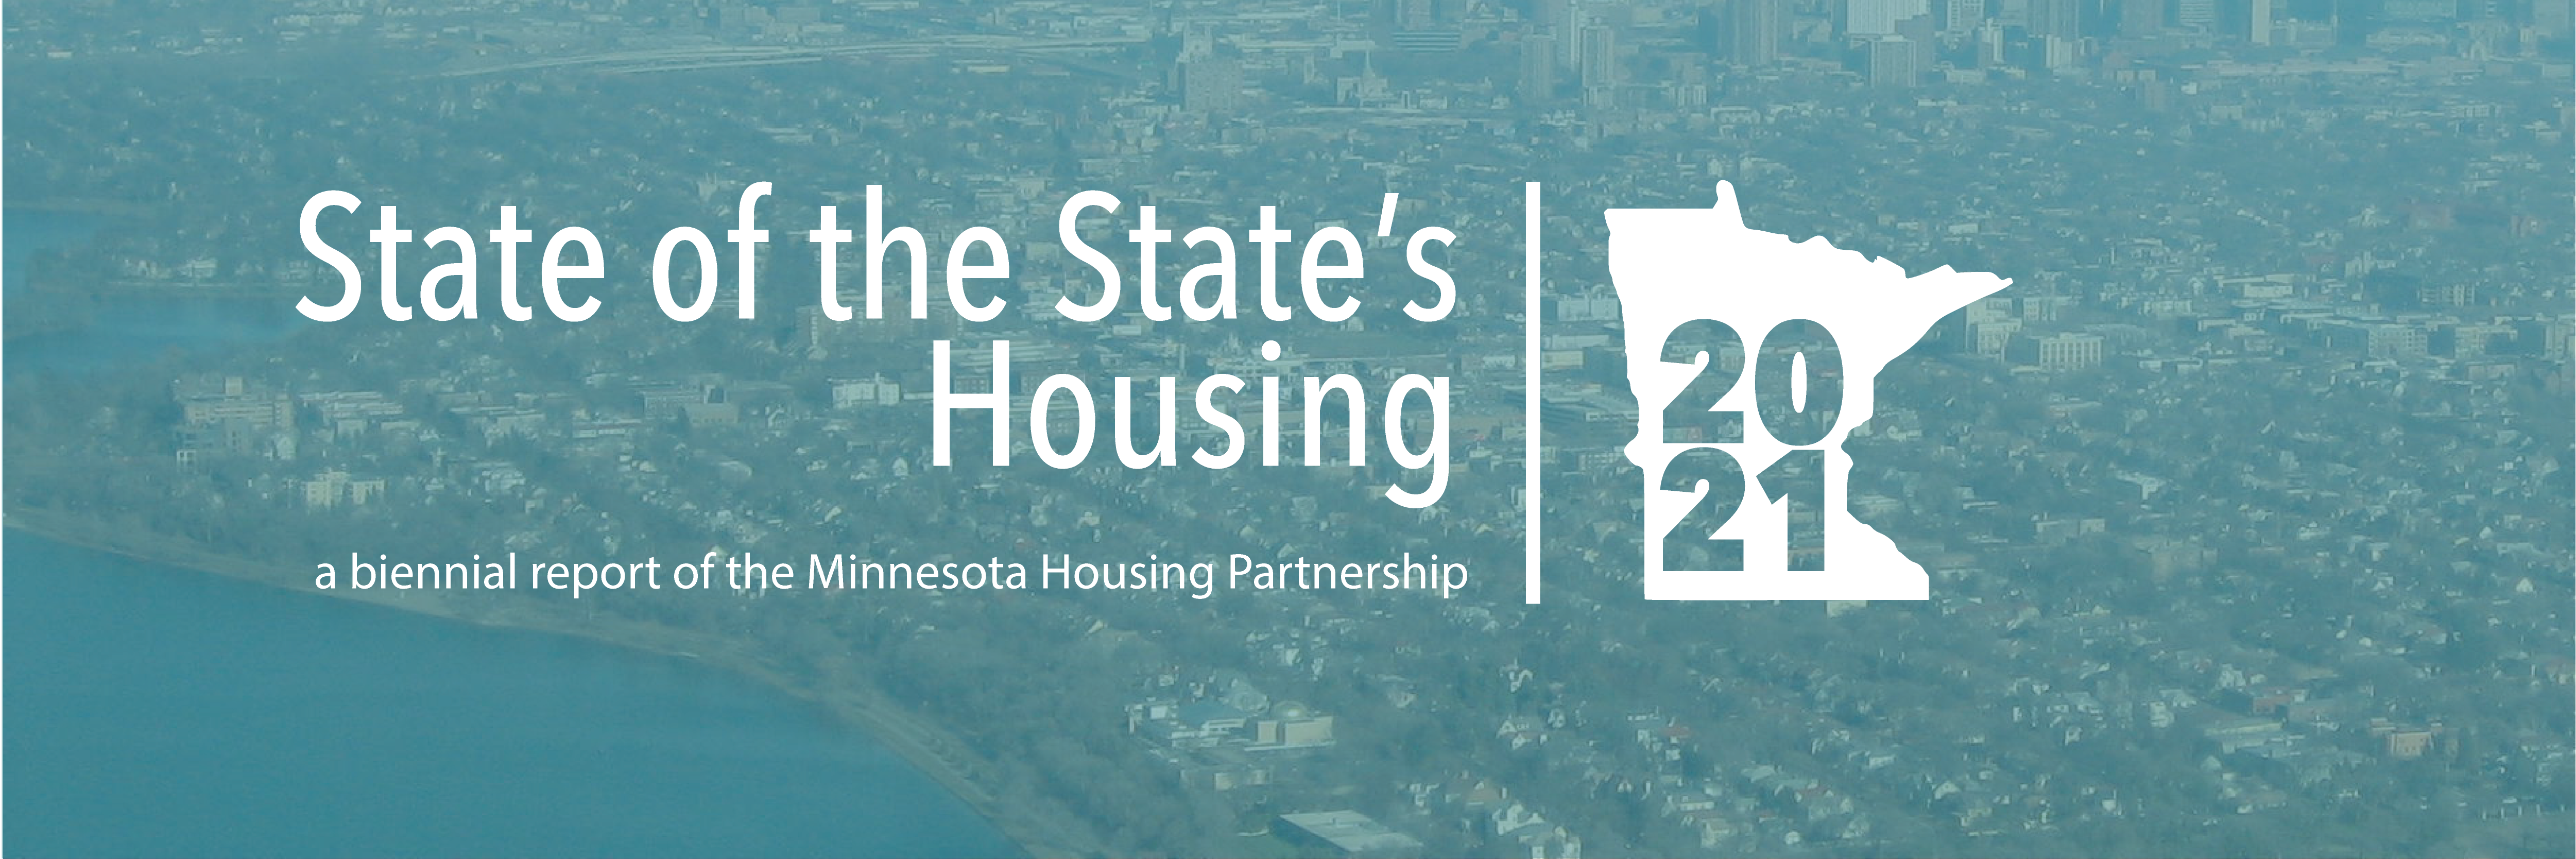 Read 2021 State of the State's Housing